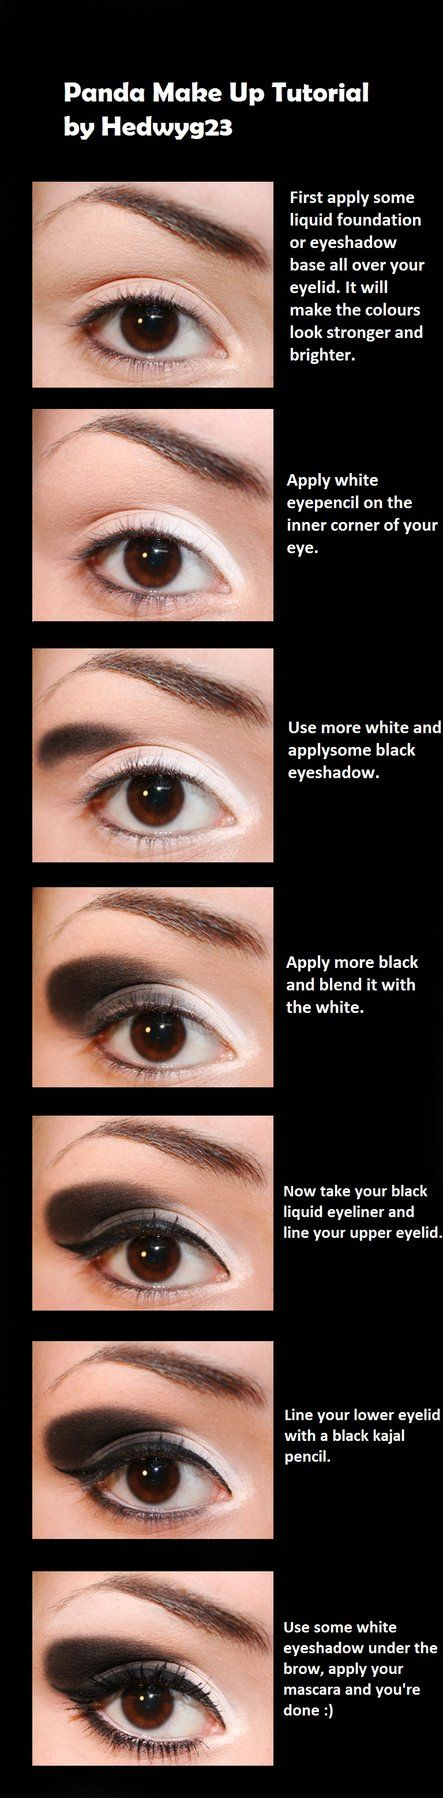 Panda Make Up Tutorial by *hedwyg23 on deviantART                                                                                                                                                                                 More